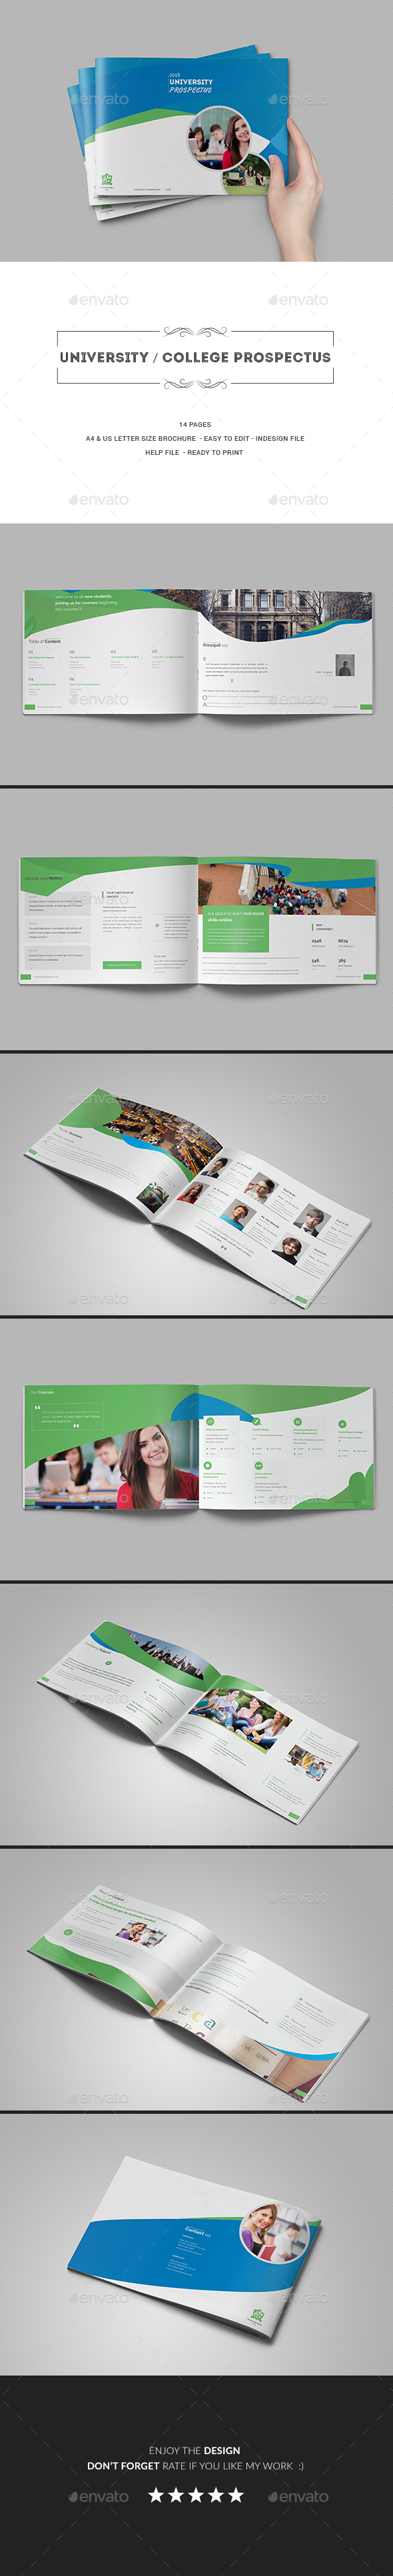 GraphicRiver University College Prospectus 20308932